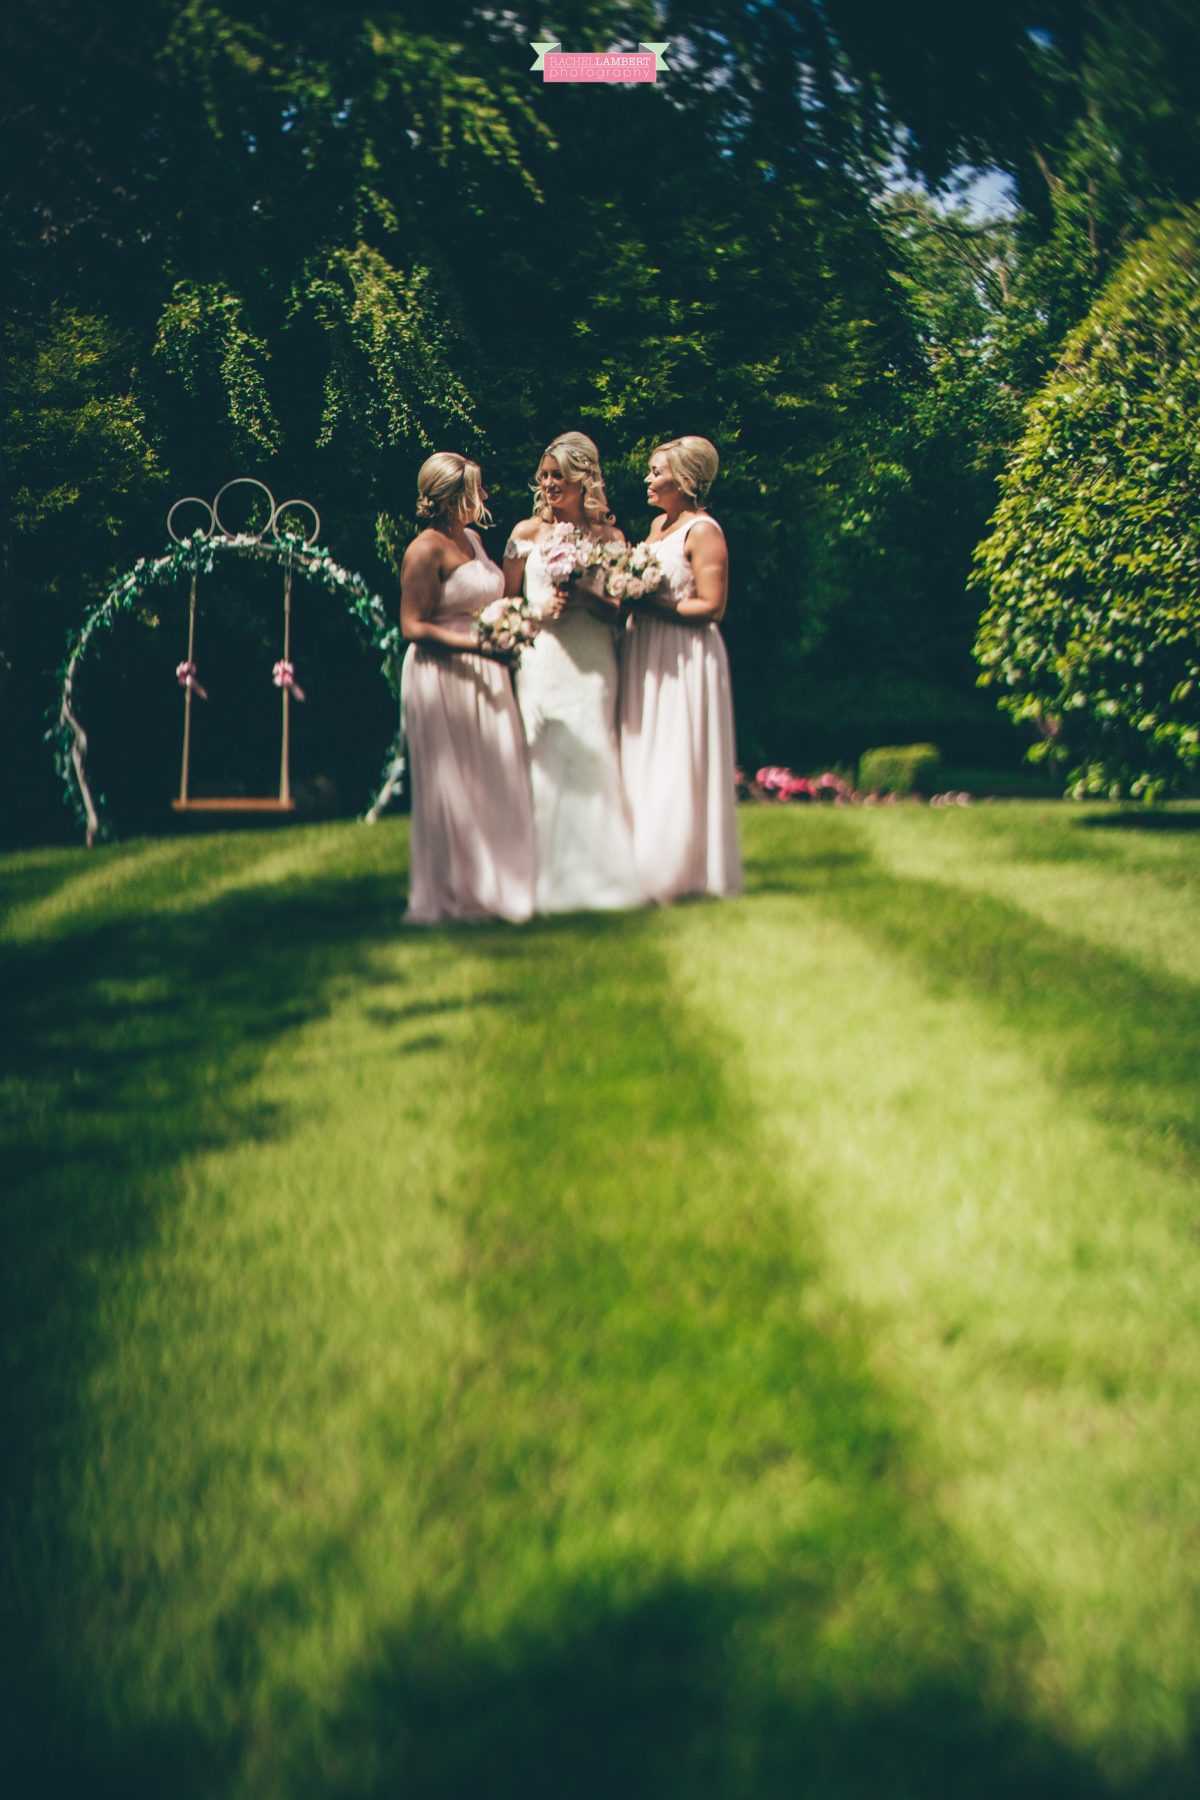 rachel lambert photography decourcey's manor wedding photographer bride and bridesmaids